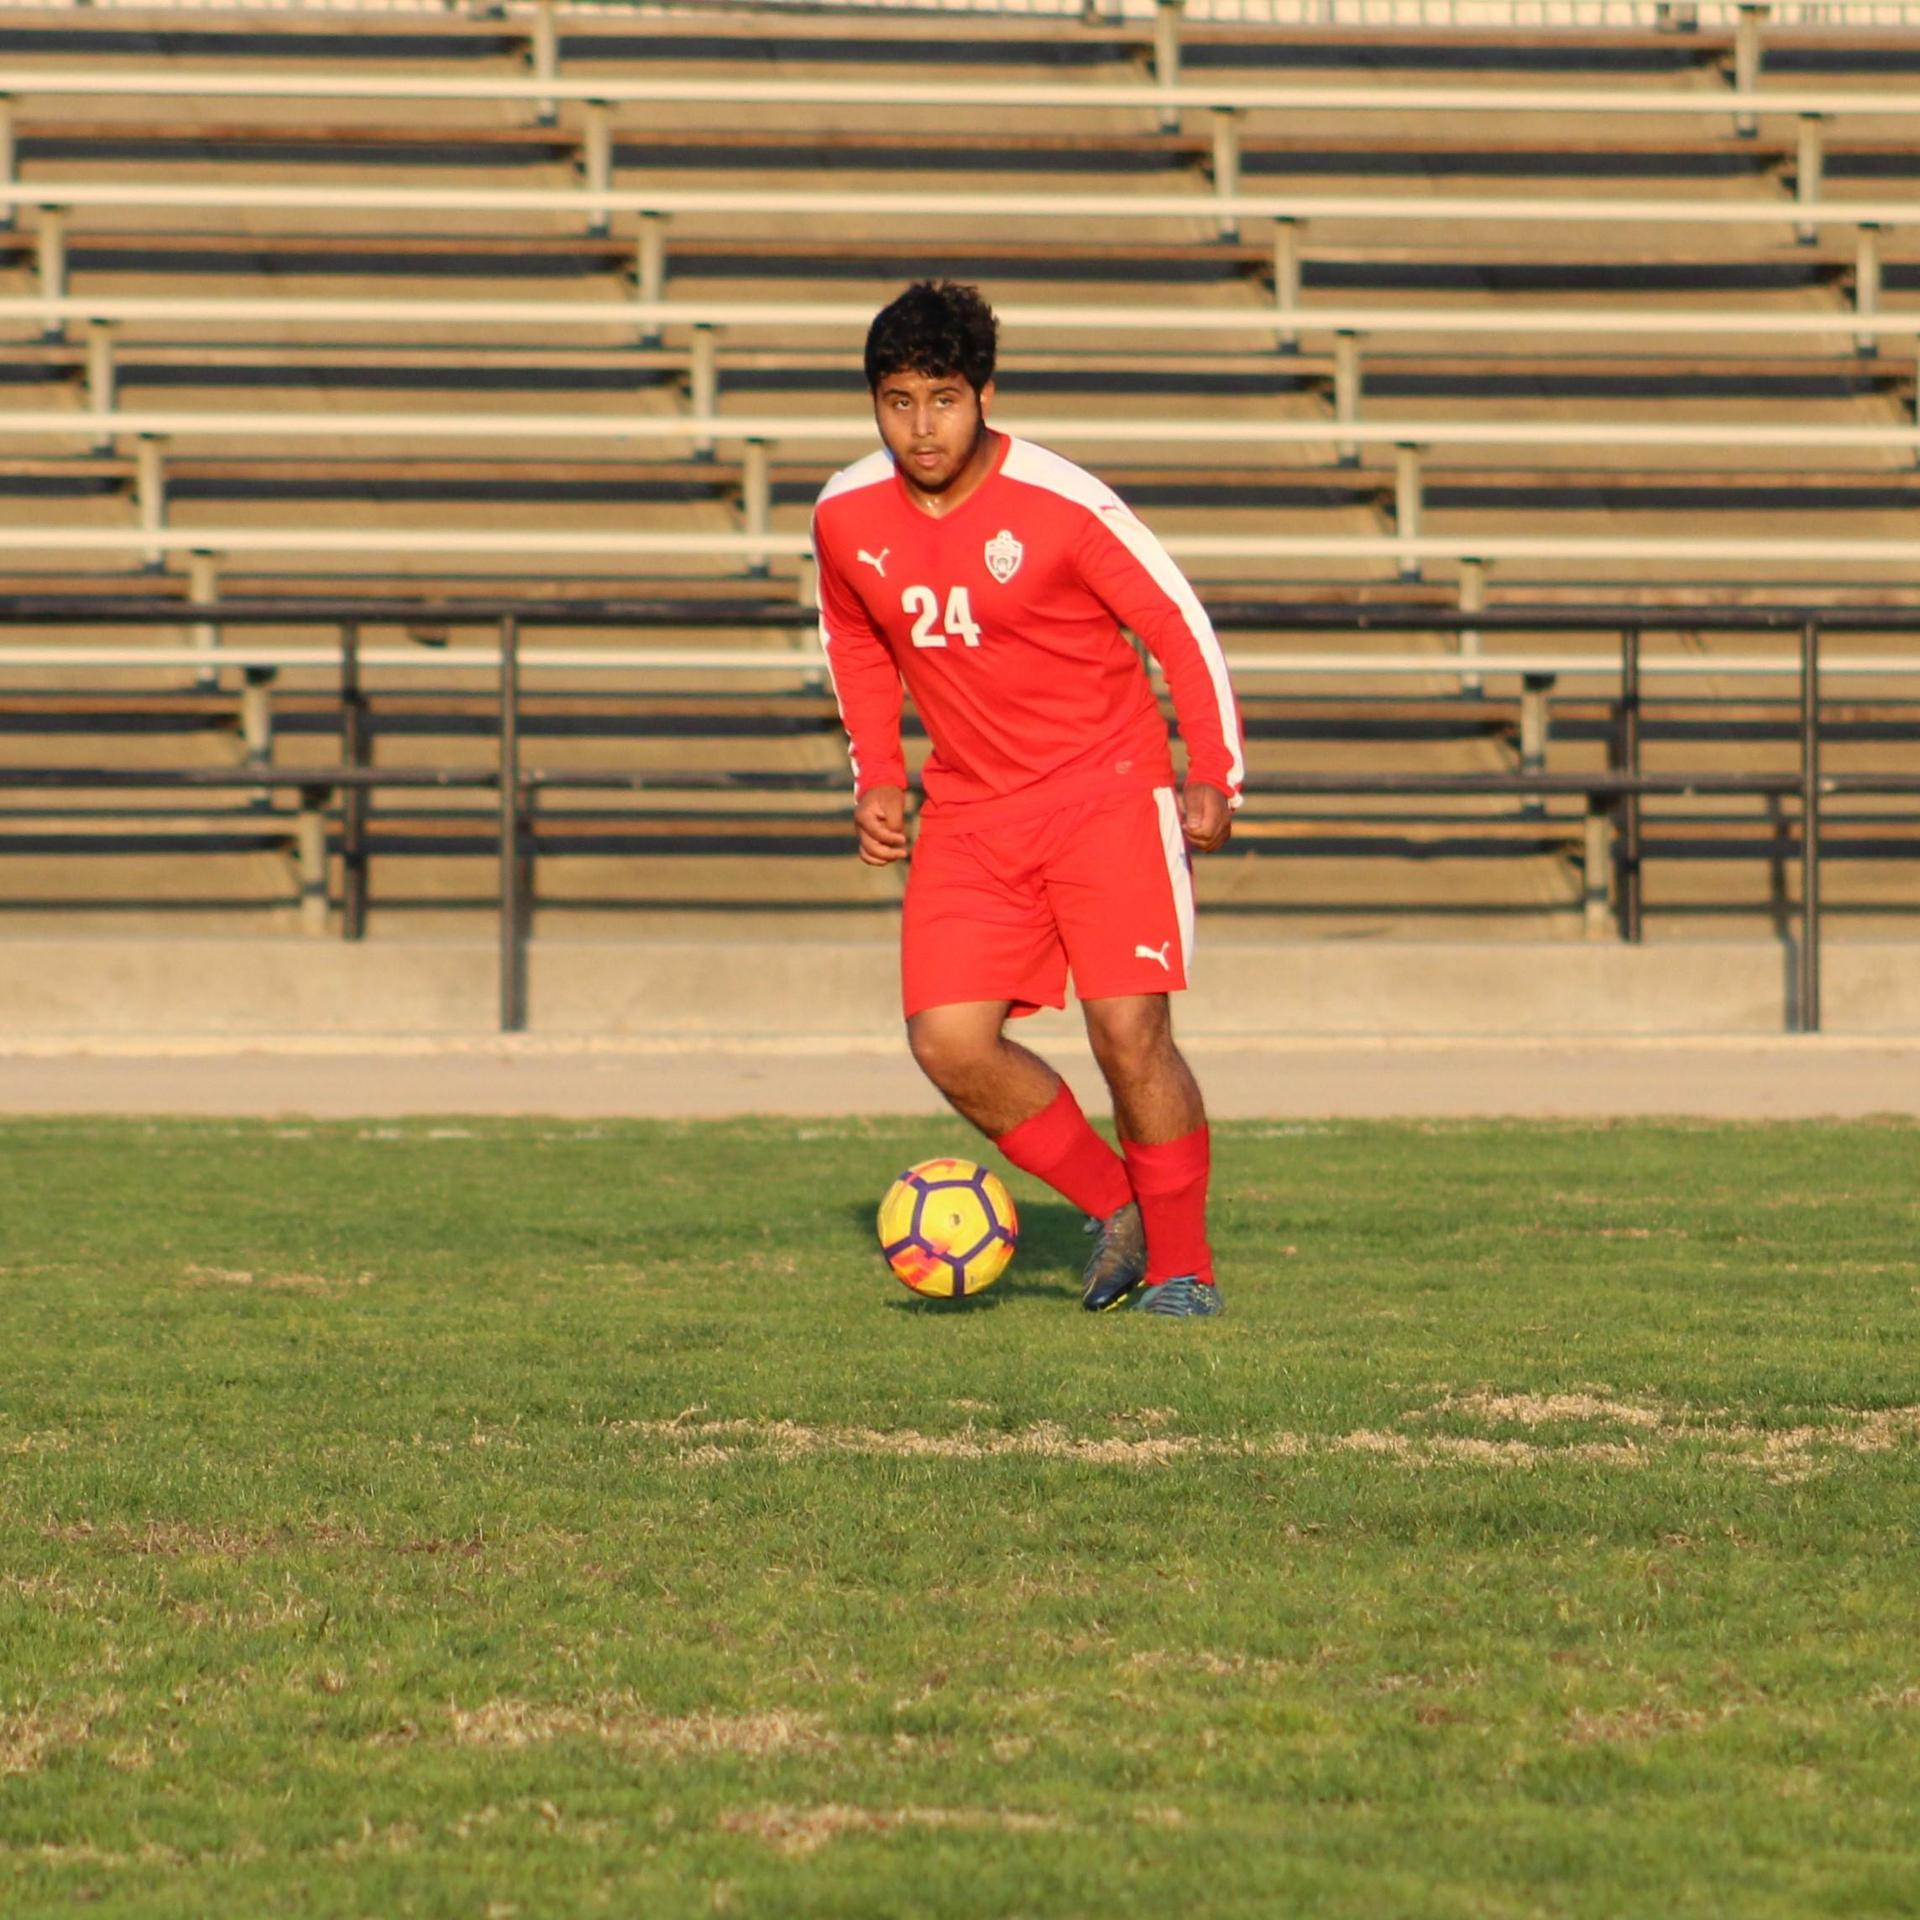 David Flores Chavez with the ball